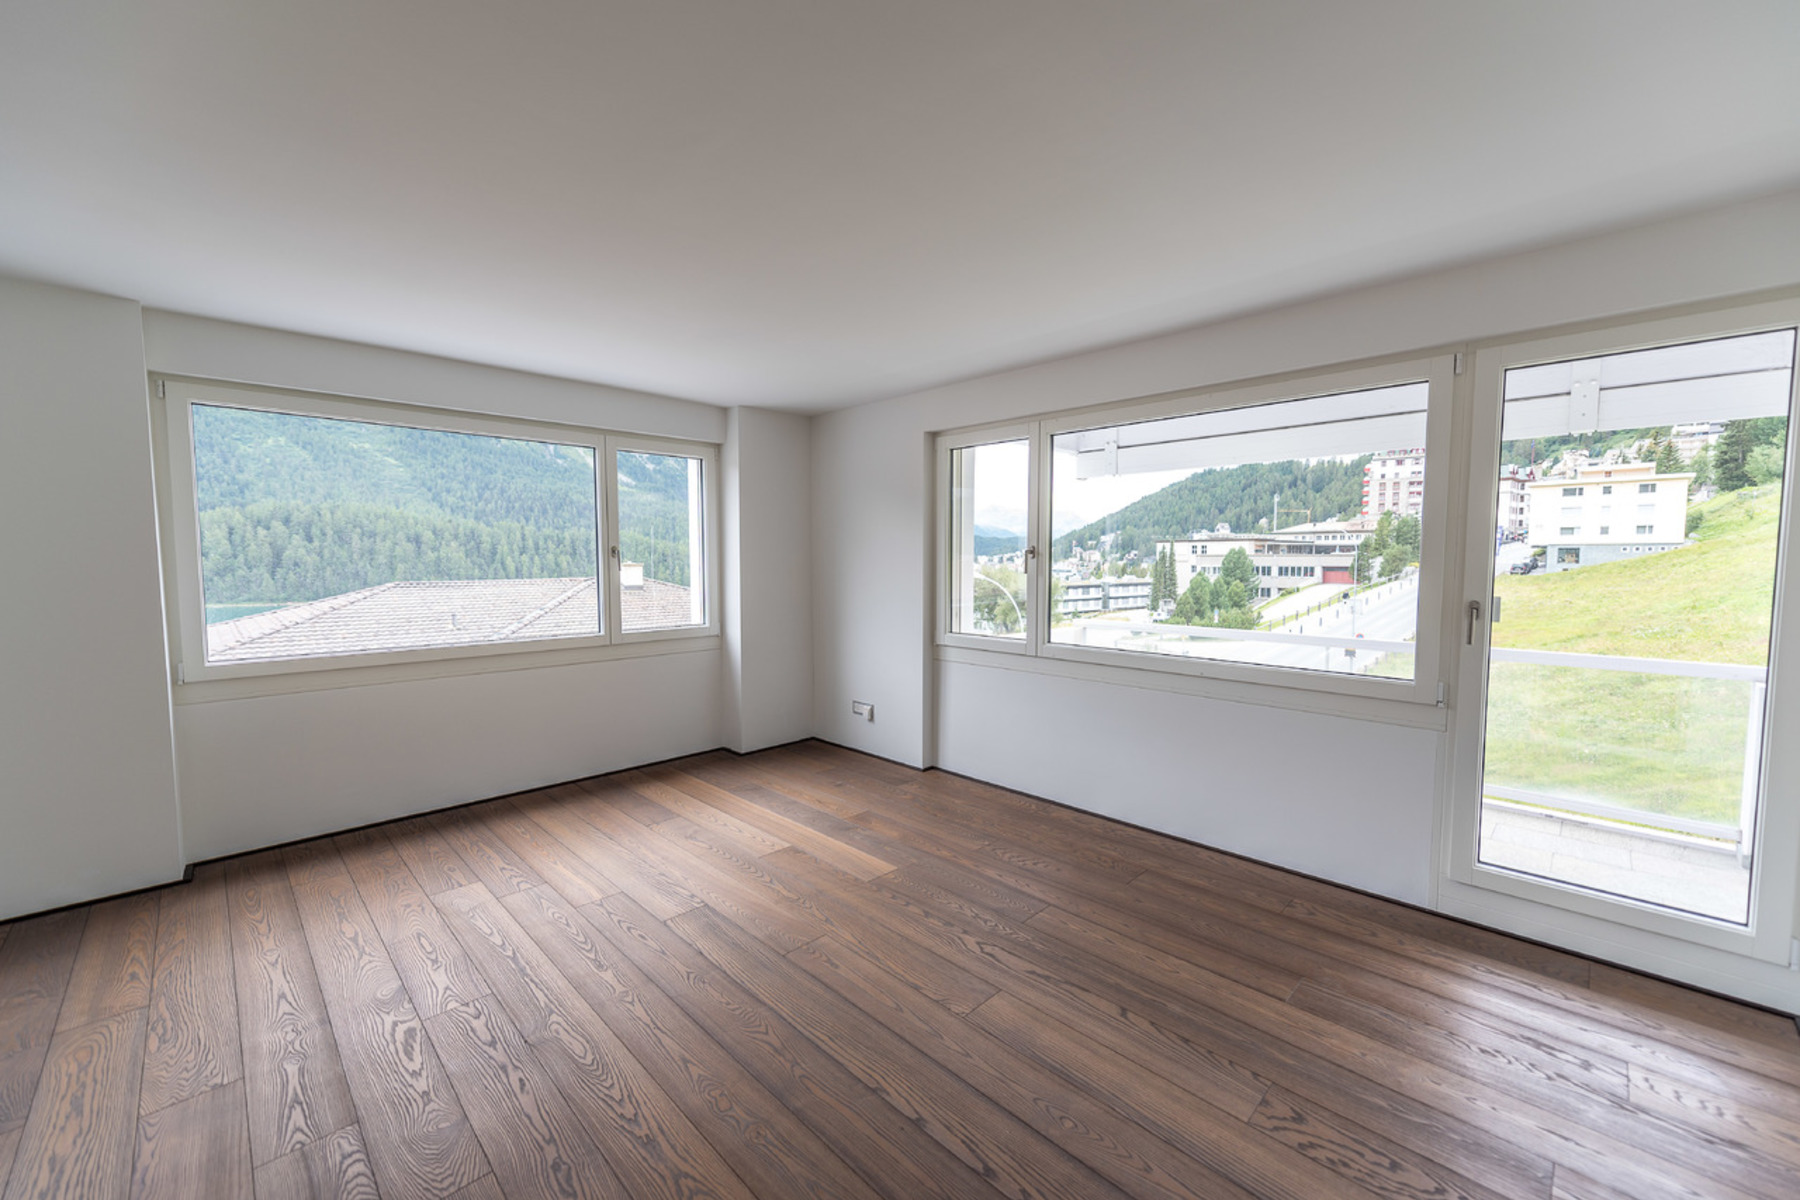 Additional photo for property listing at 4 ½ rooms apartment in St. Moritz,  St. Moritz, Grisons 7500 Швейцария